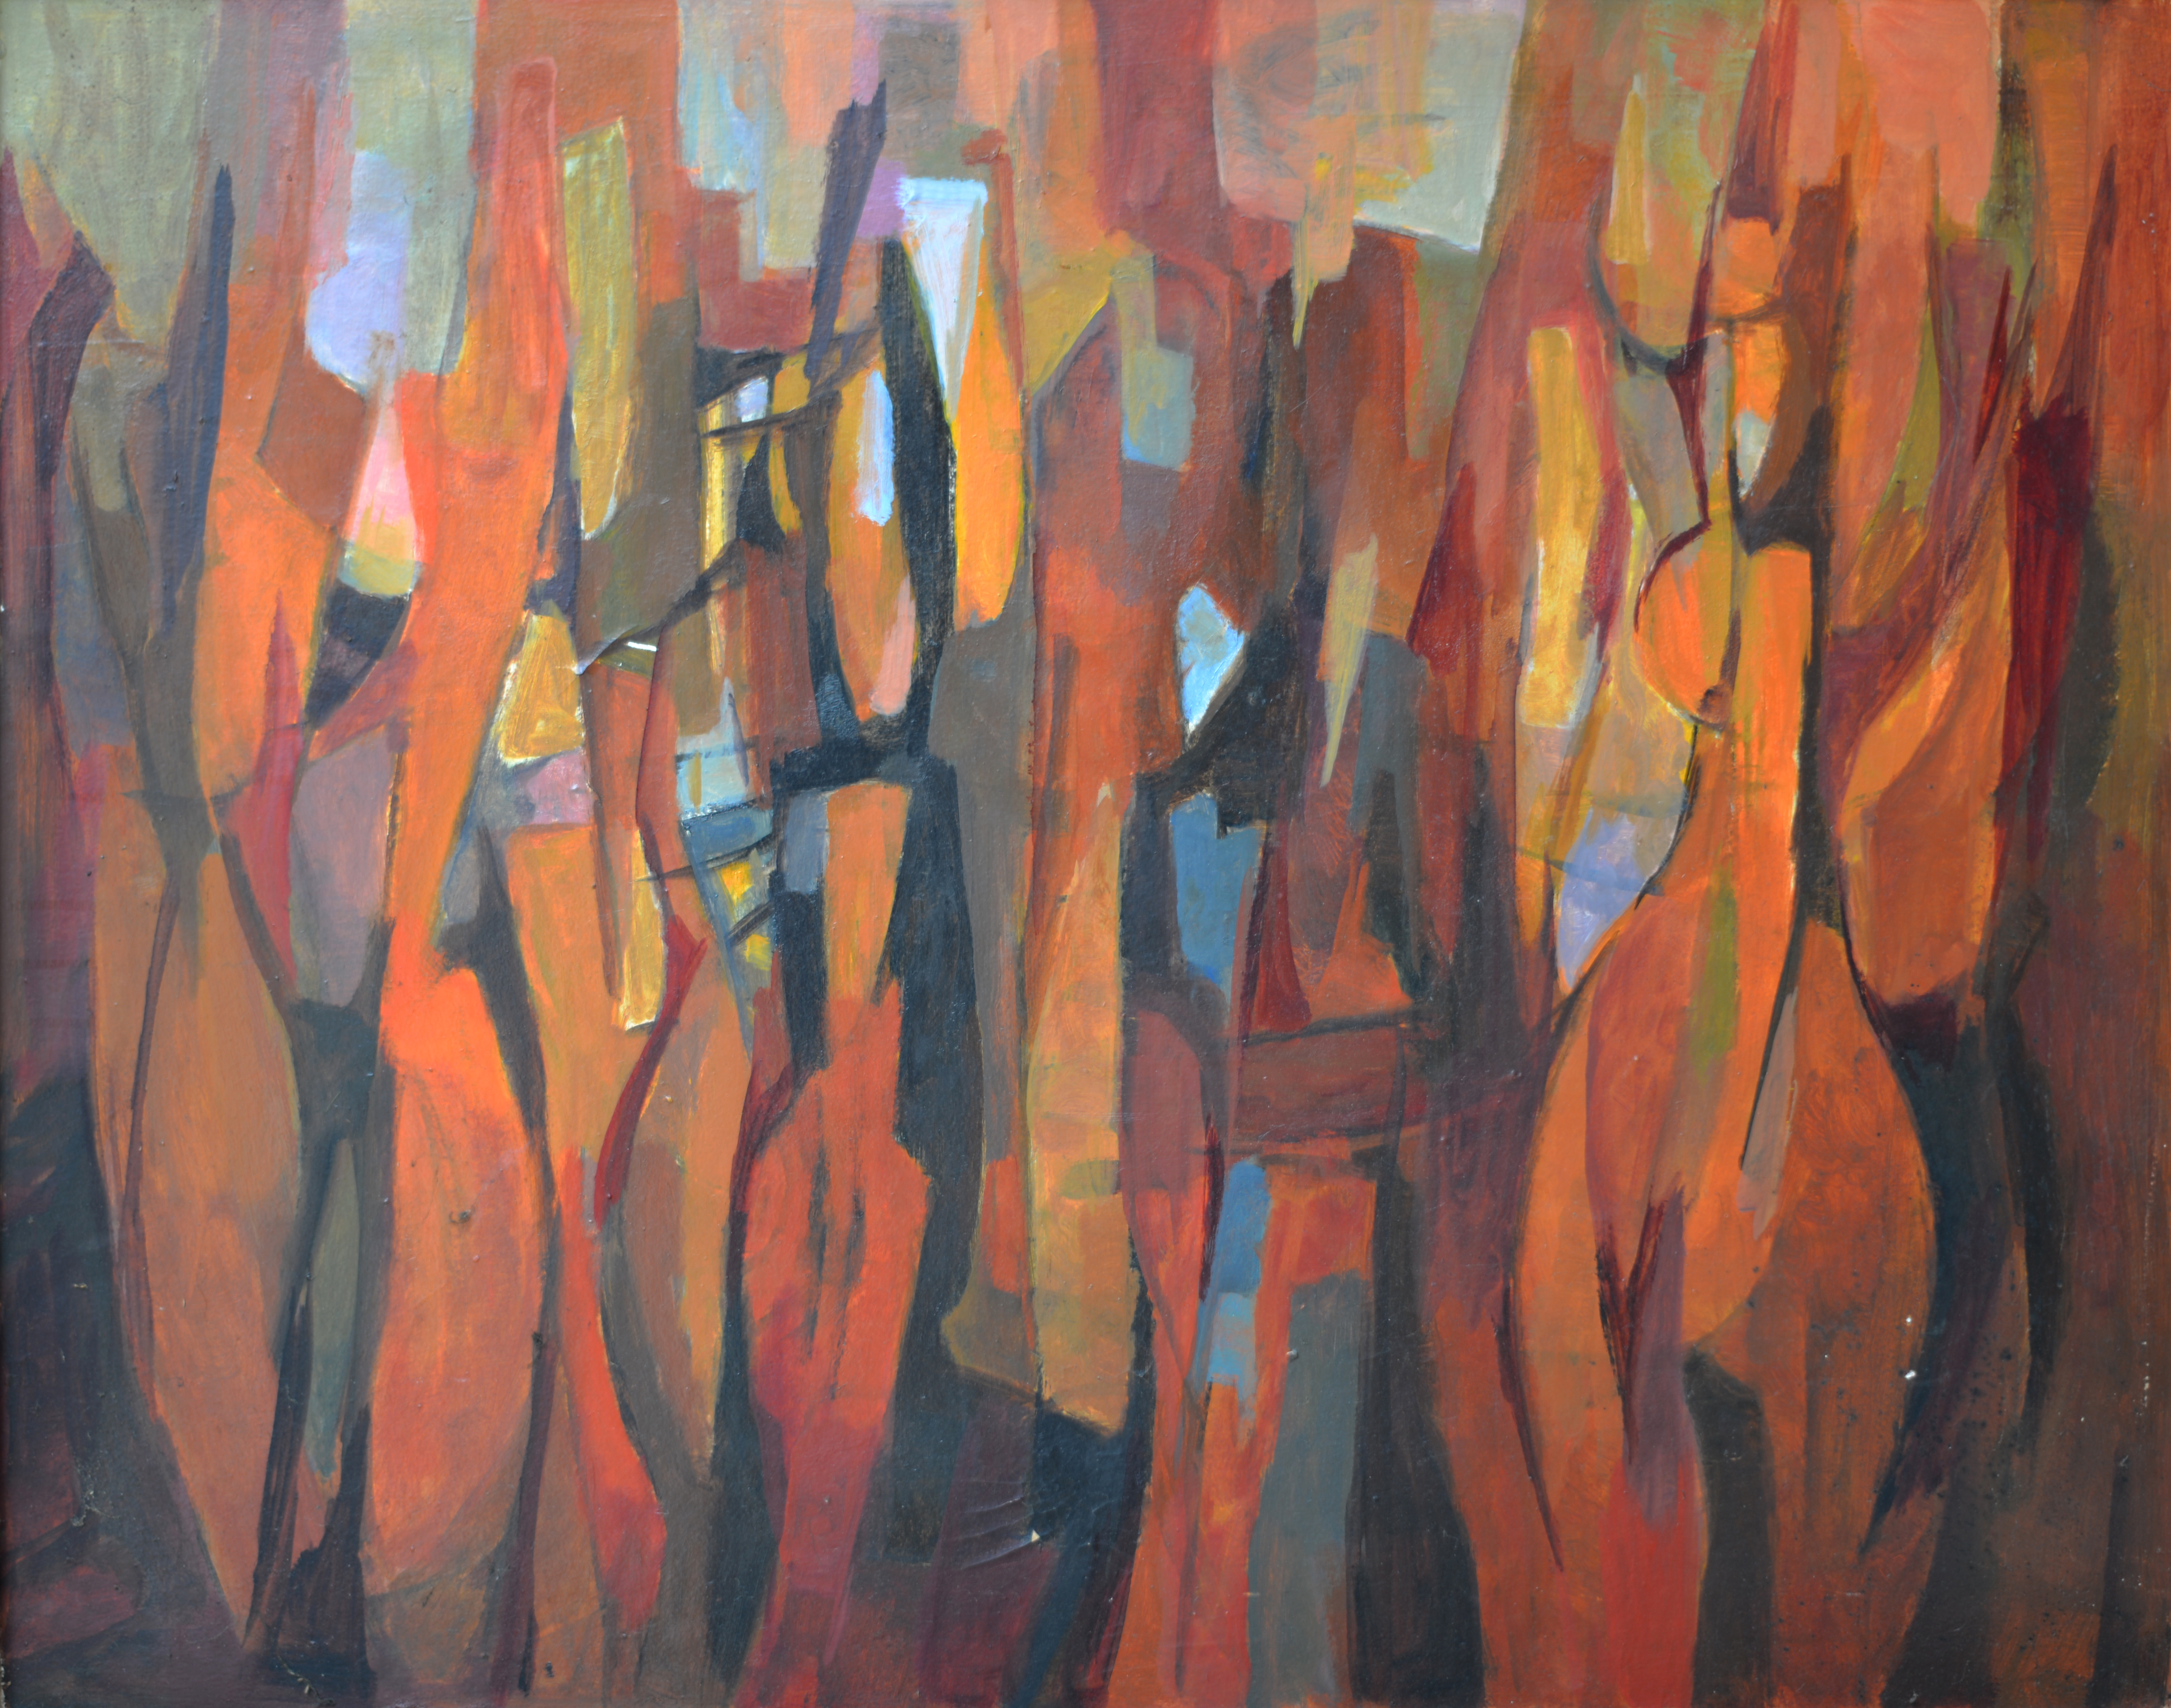 392. Abstraction. Huile sur Isorel